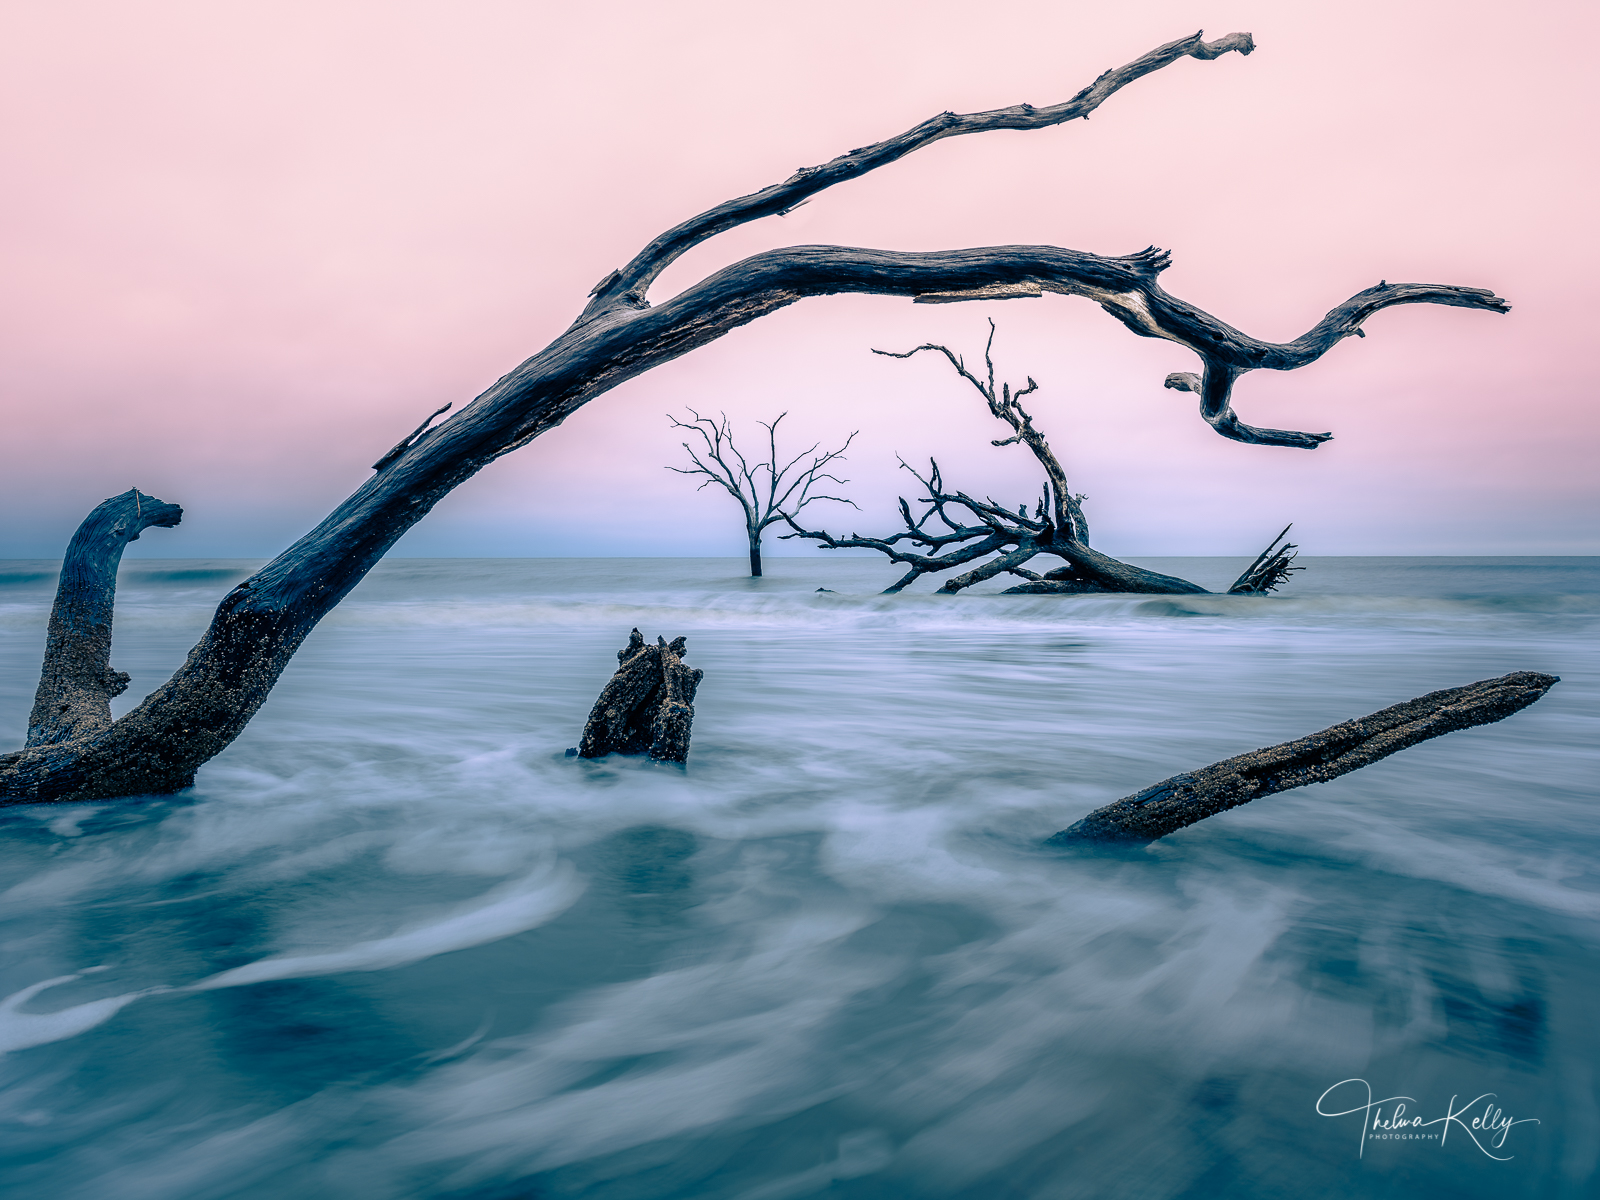 Bulls Island is a barrier island of the coast of South Carolina with many species of dead trees